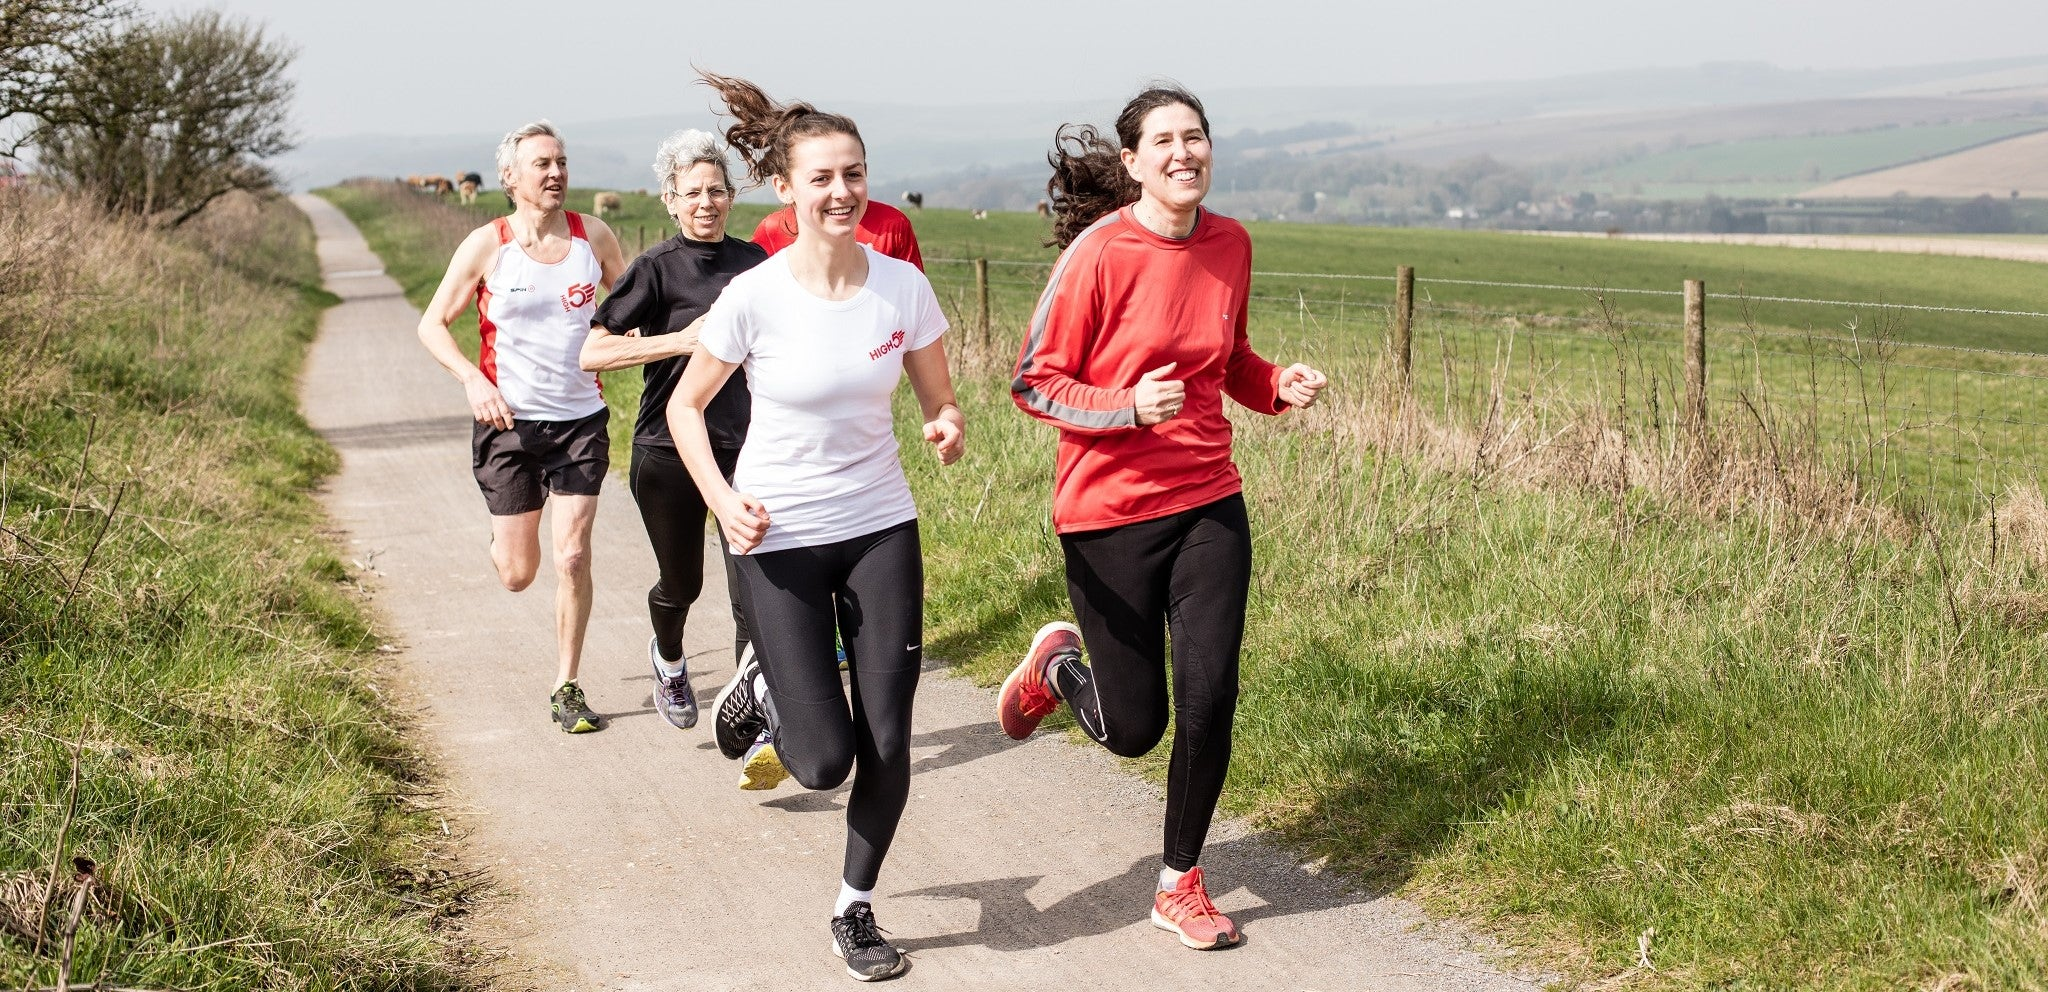 People running in the countryside